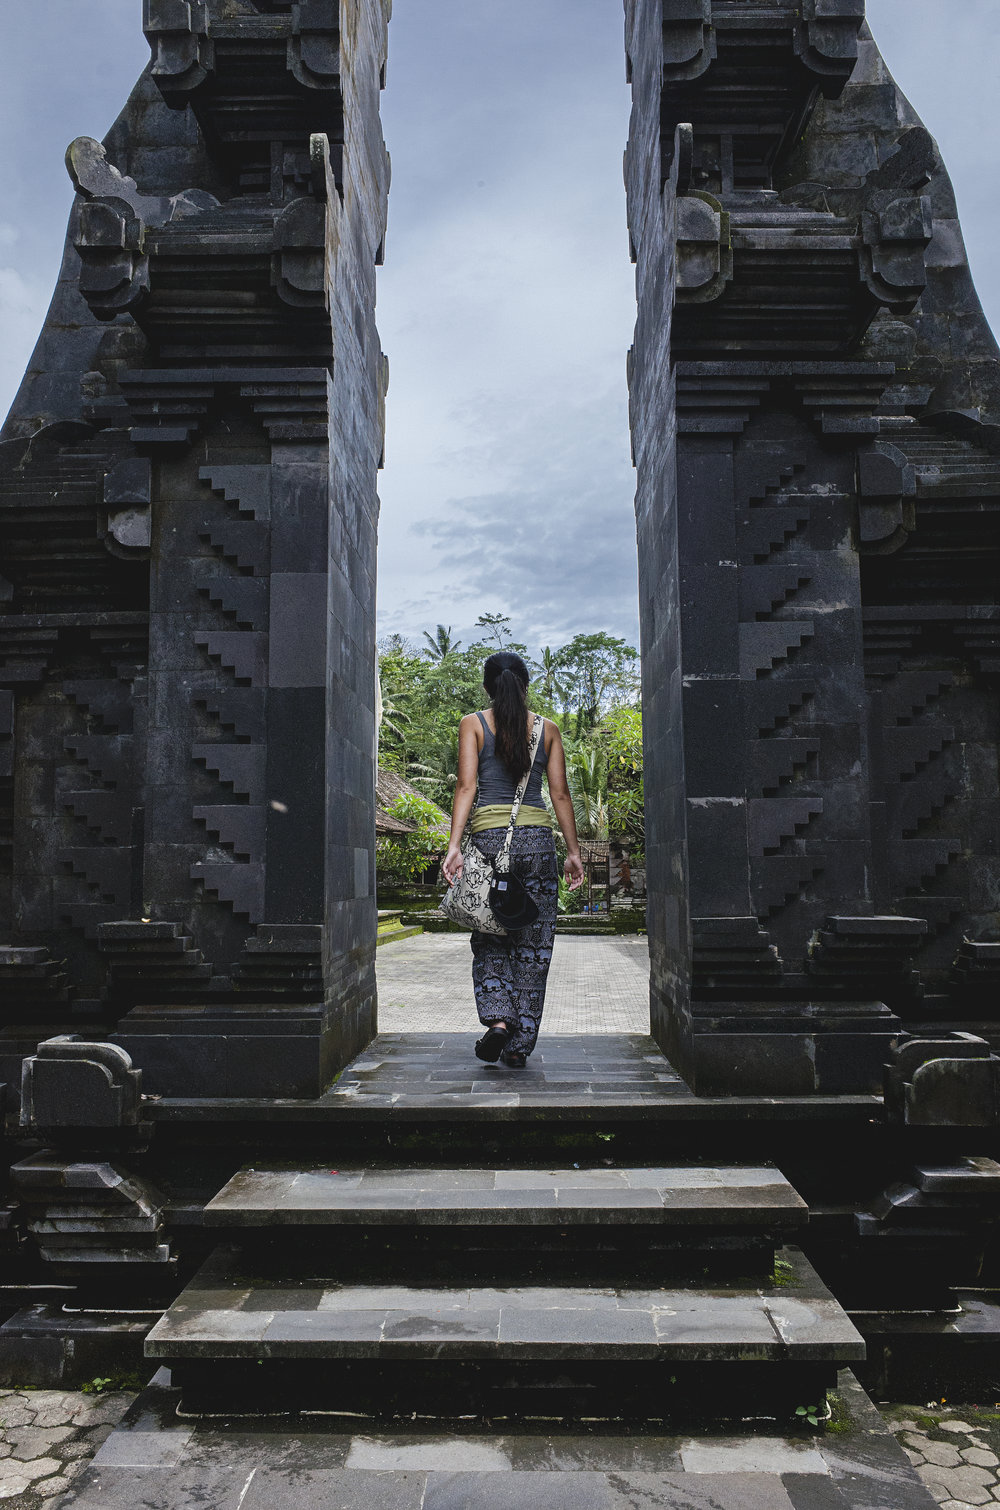 Sherrine exploring the grounds of a temple.